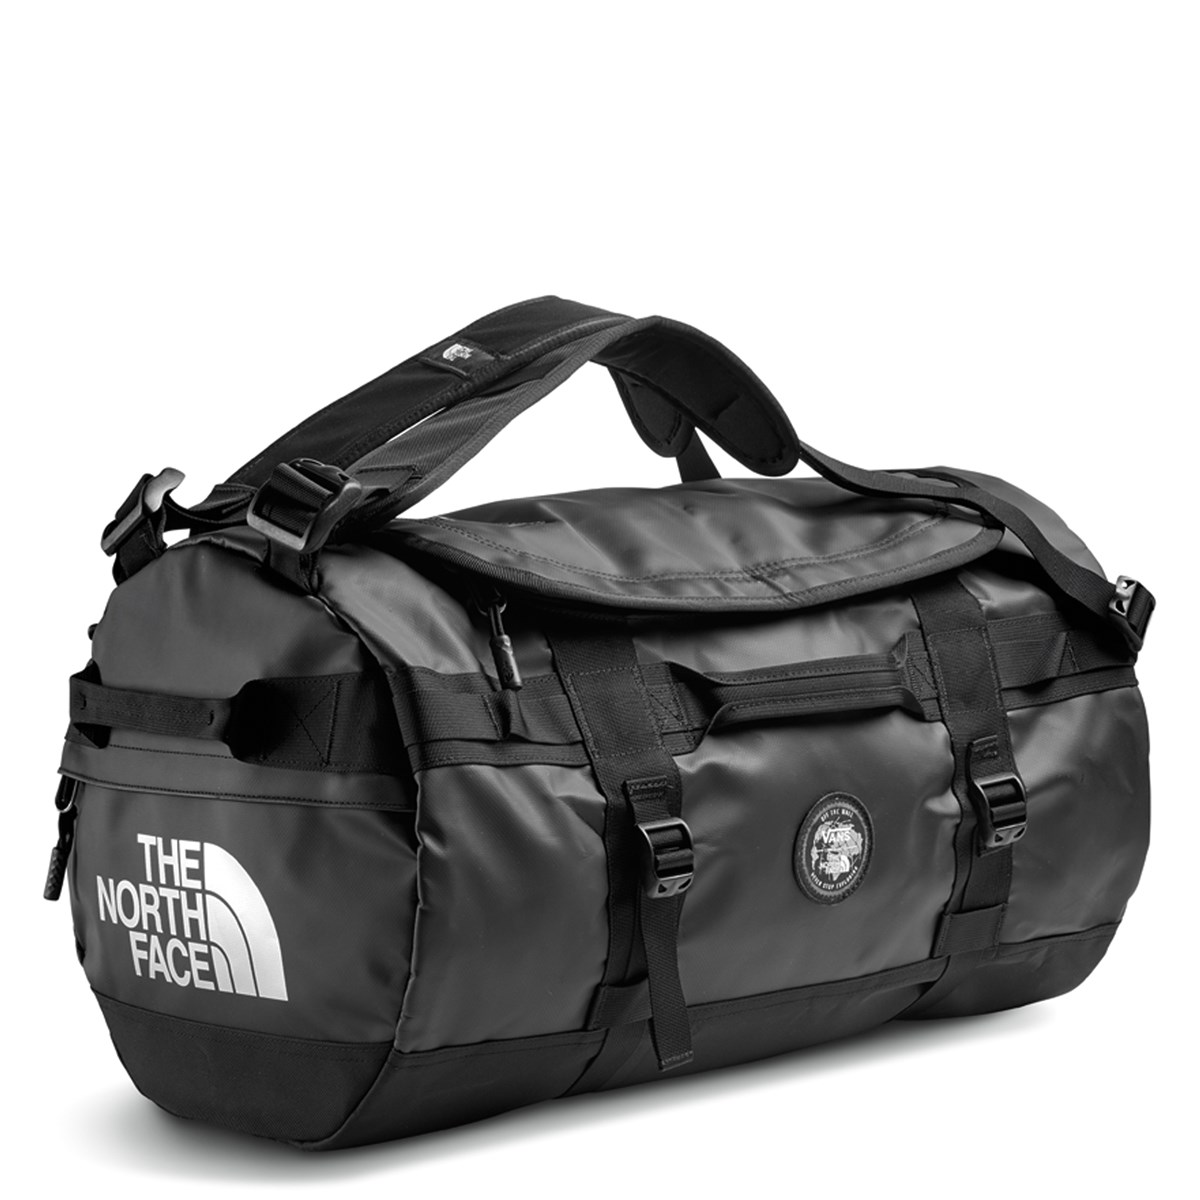 9ac3c205c2f7 North Face Duffel Bag Xl. North Face Duffel Bag Xl. North Face Duffel  Backpack Straps Fenix Toulouse Handball ...